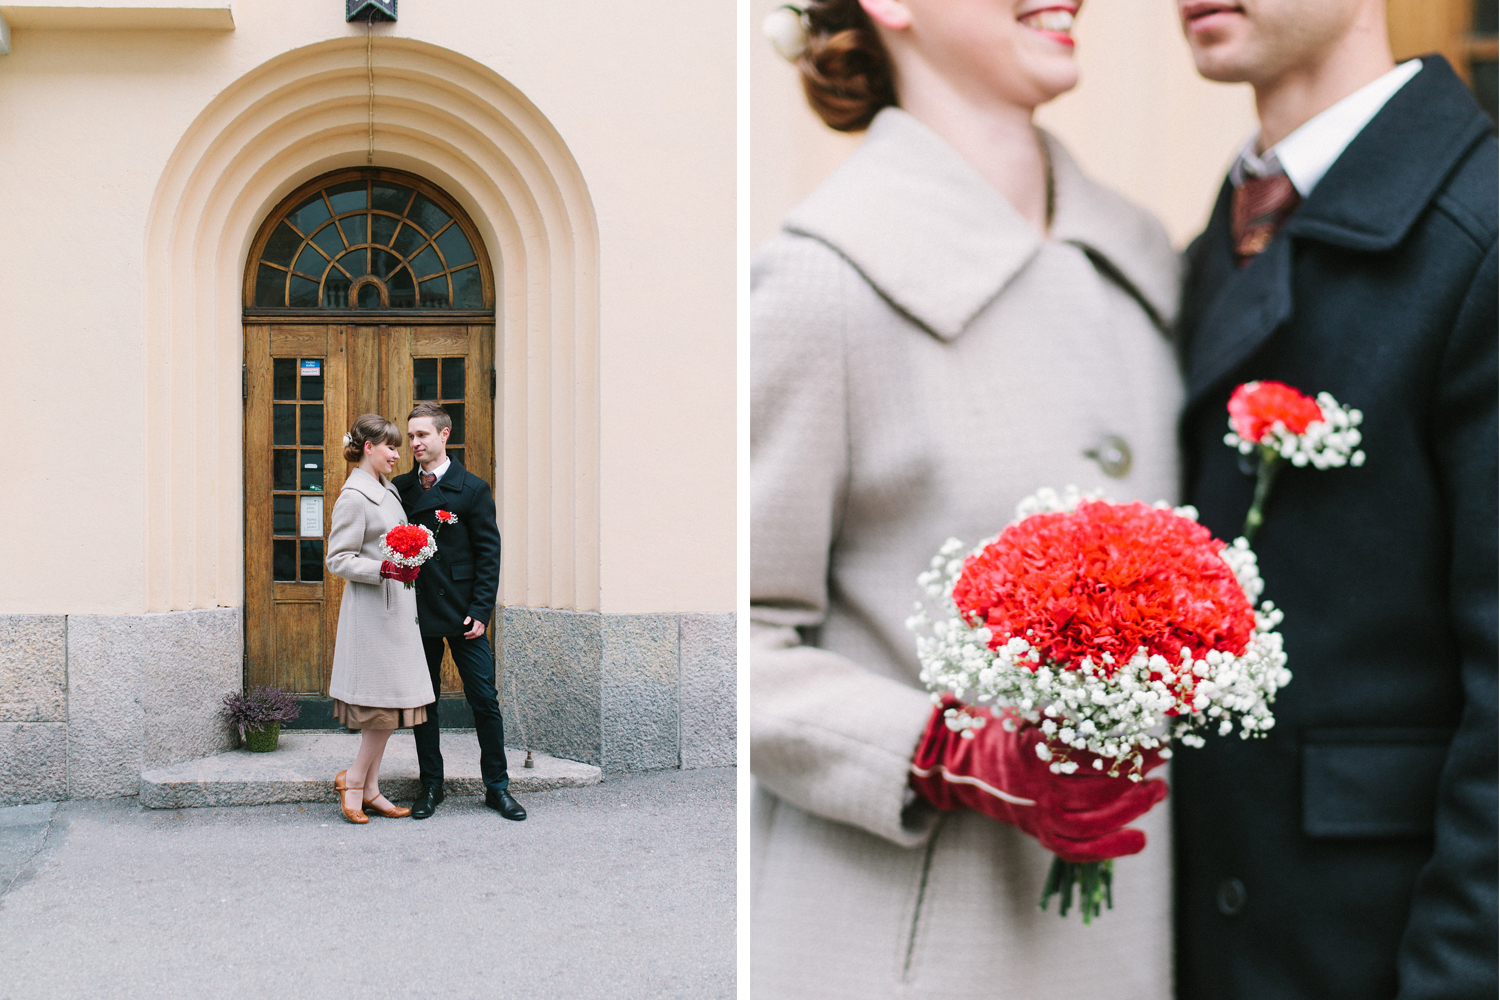 Marjo & Petrus_Helsinki winter wedding3